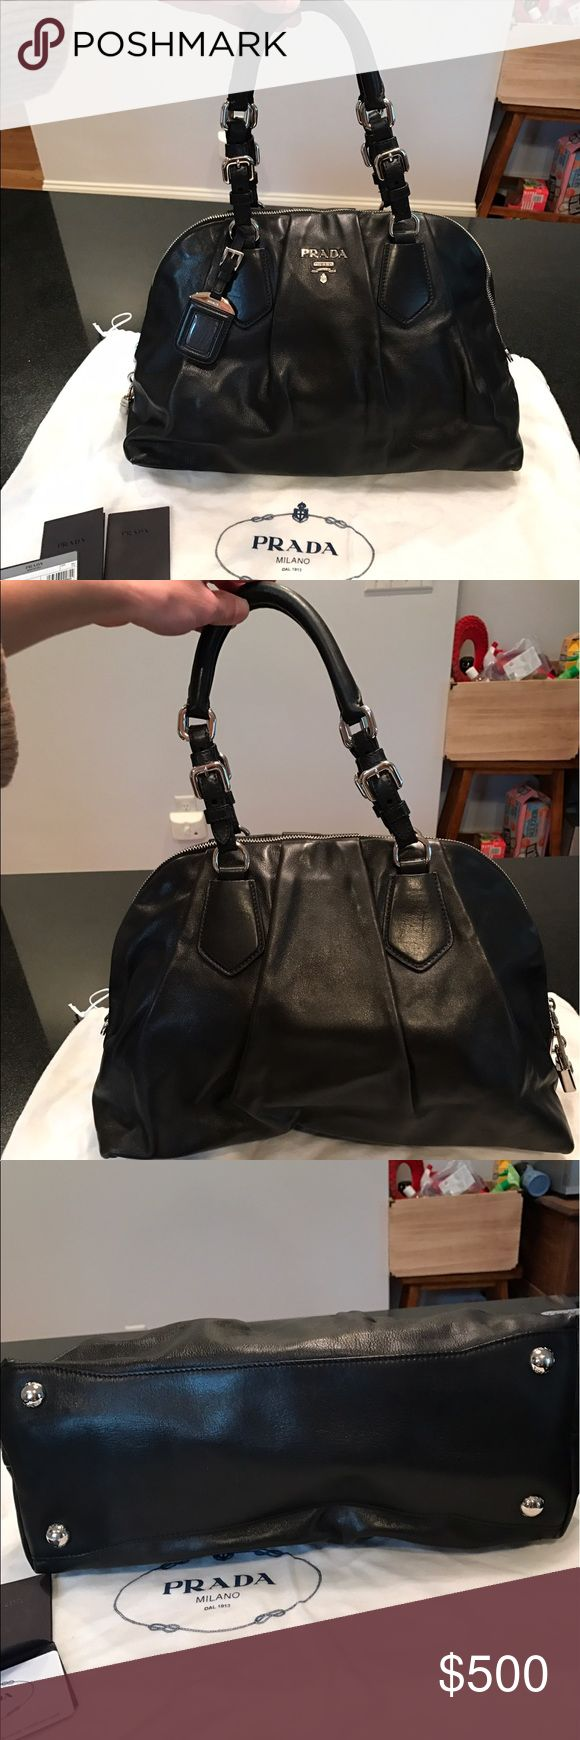 "Classic Black Prada Handbag Classic Black Smooth Leather Prada Handbag with Silver Hardware. Condition: Like New, Handles and hardware in great condition. Size: 15""L x 6"" W x 10"" H. Accessories: Silver lock and instructions of Use included. Card of Authentication. Prada name tag holder that came with bag. Prada brand cloth bag protectant. Damage: Very small light scratch on front of bag near bottom right (picture shows). Serial number inside interior pocket #100 Prada Bags Mini Bags"